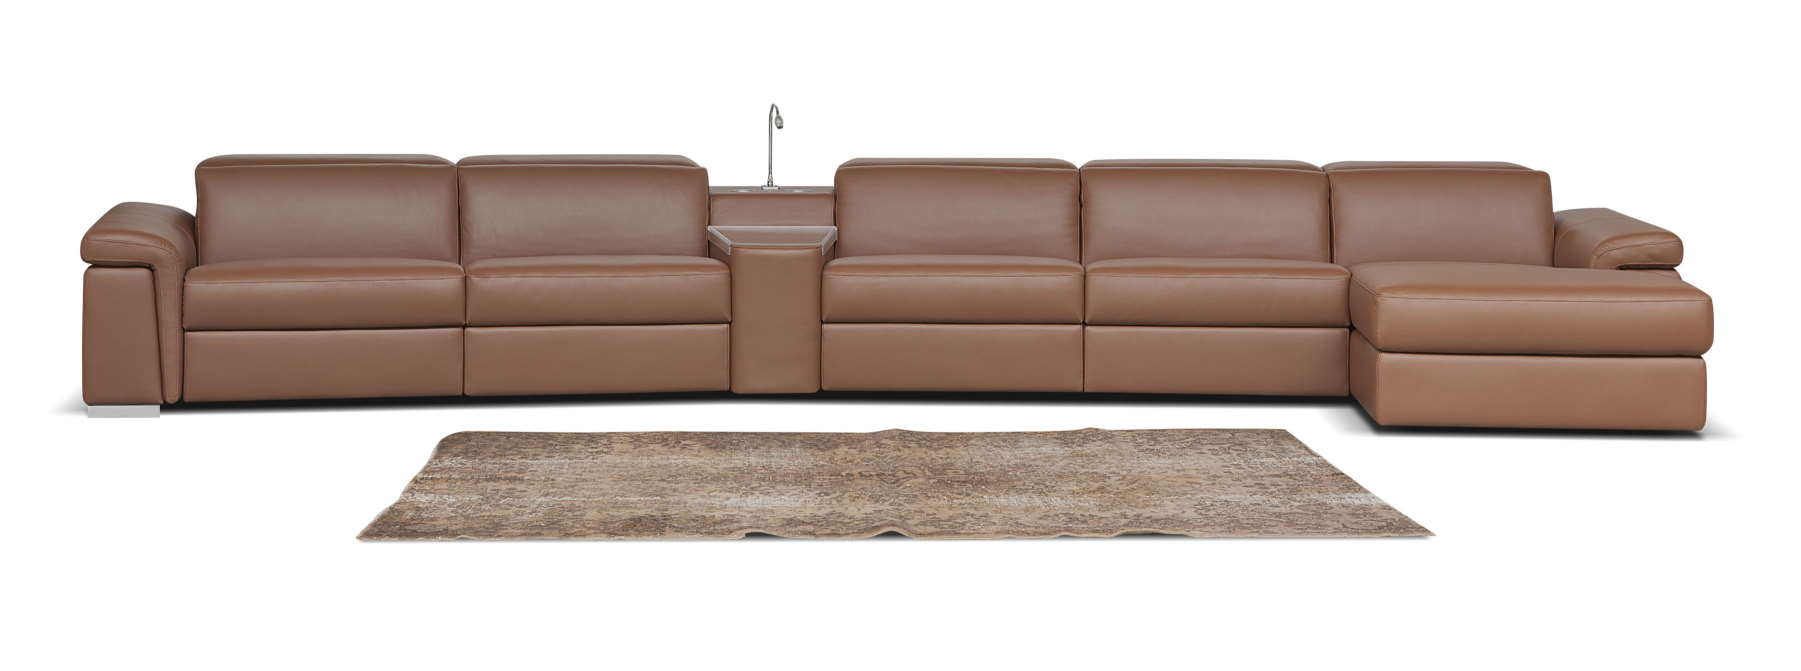 Sofas From George Street Furnishers Newport